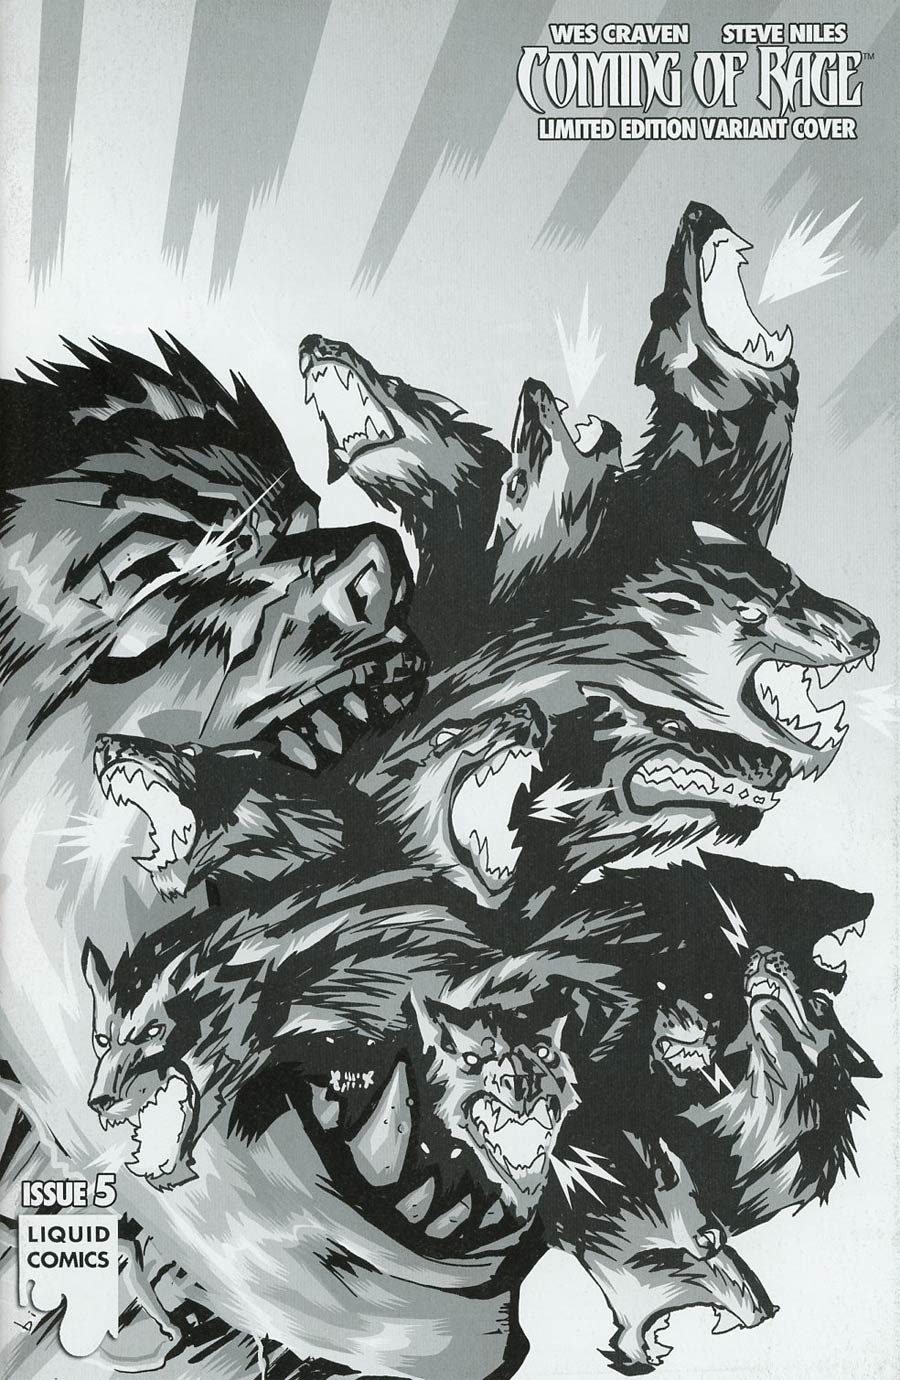 Wes Cravens Coming Of Rage #5 Cover D Variant Francesco Biagini Ultra-Rare Black & White Cover